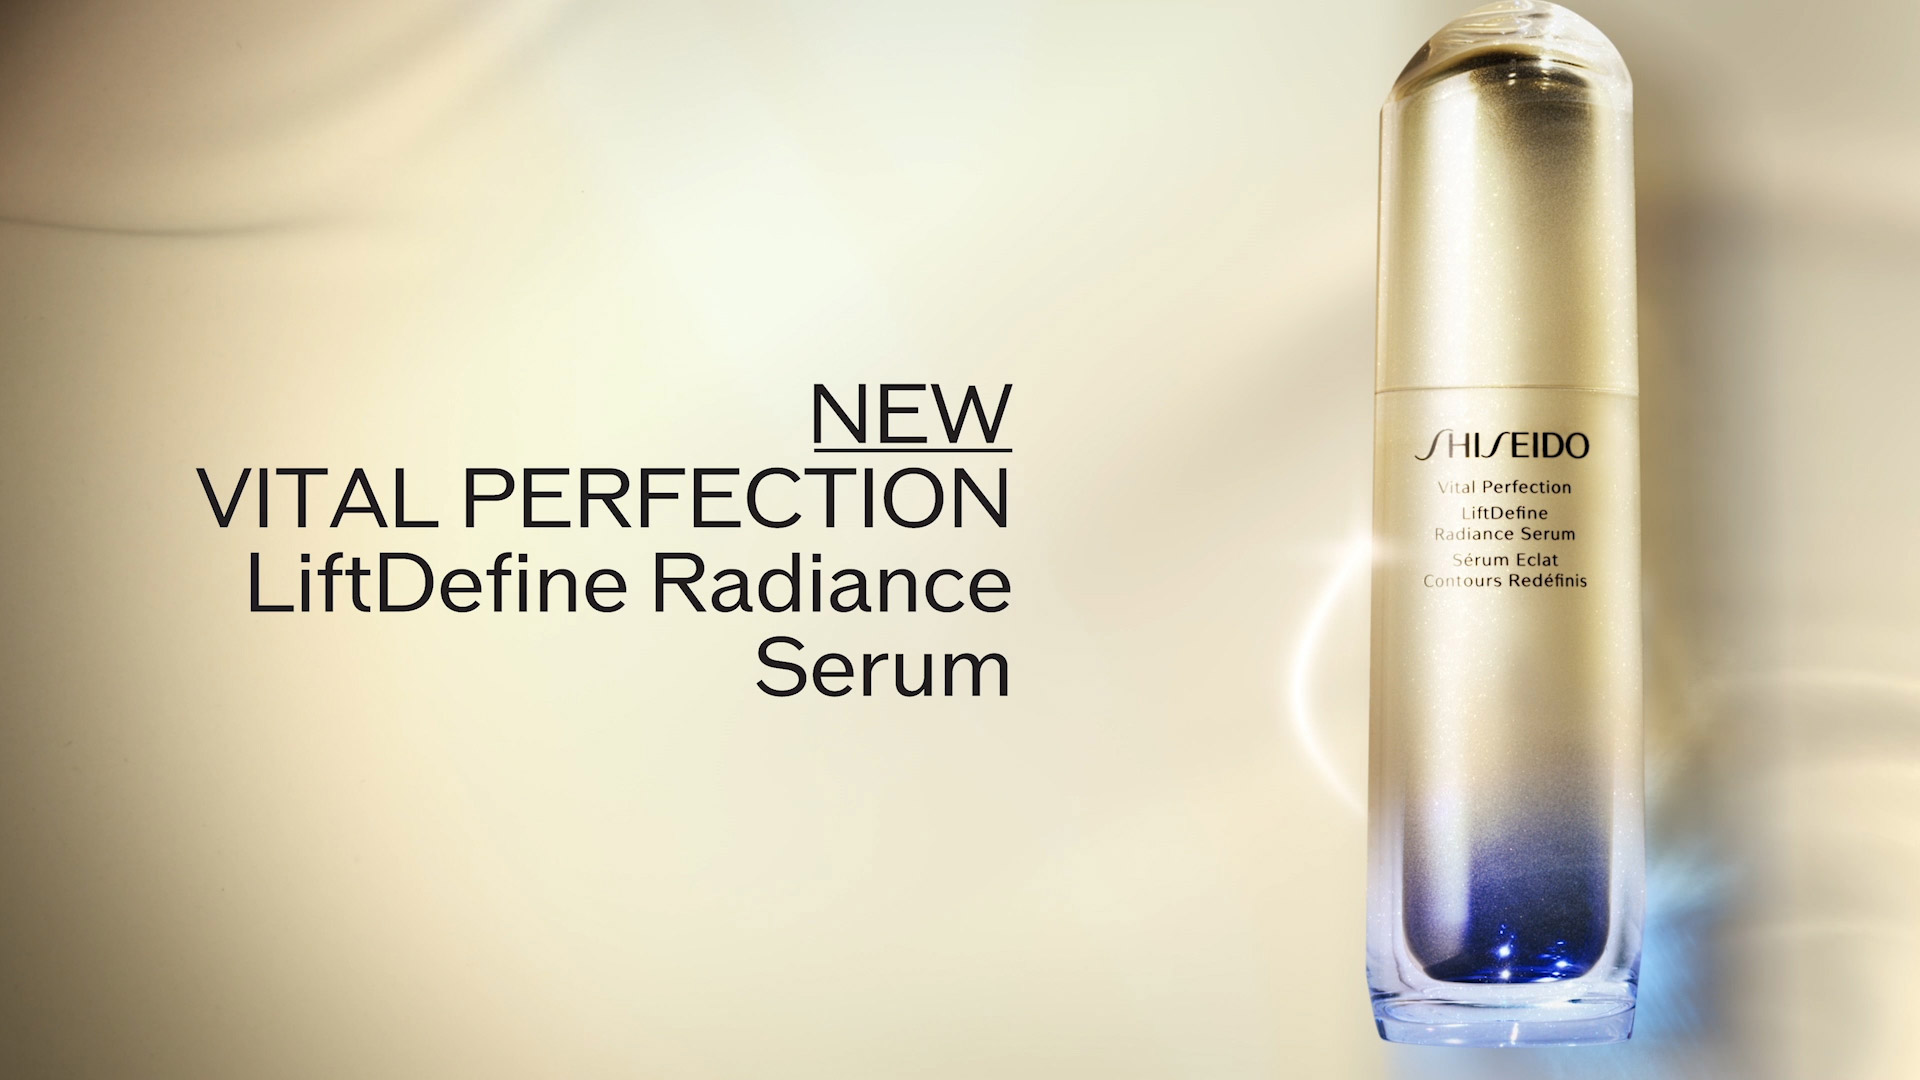 NEW Vital Perfection LifeDefine Radiance Serum